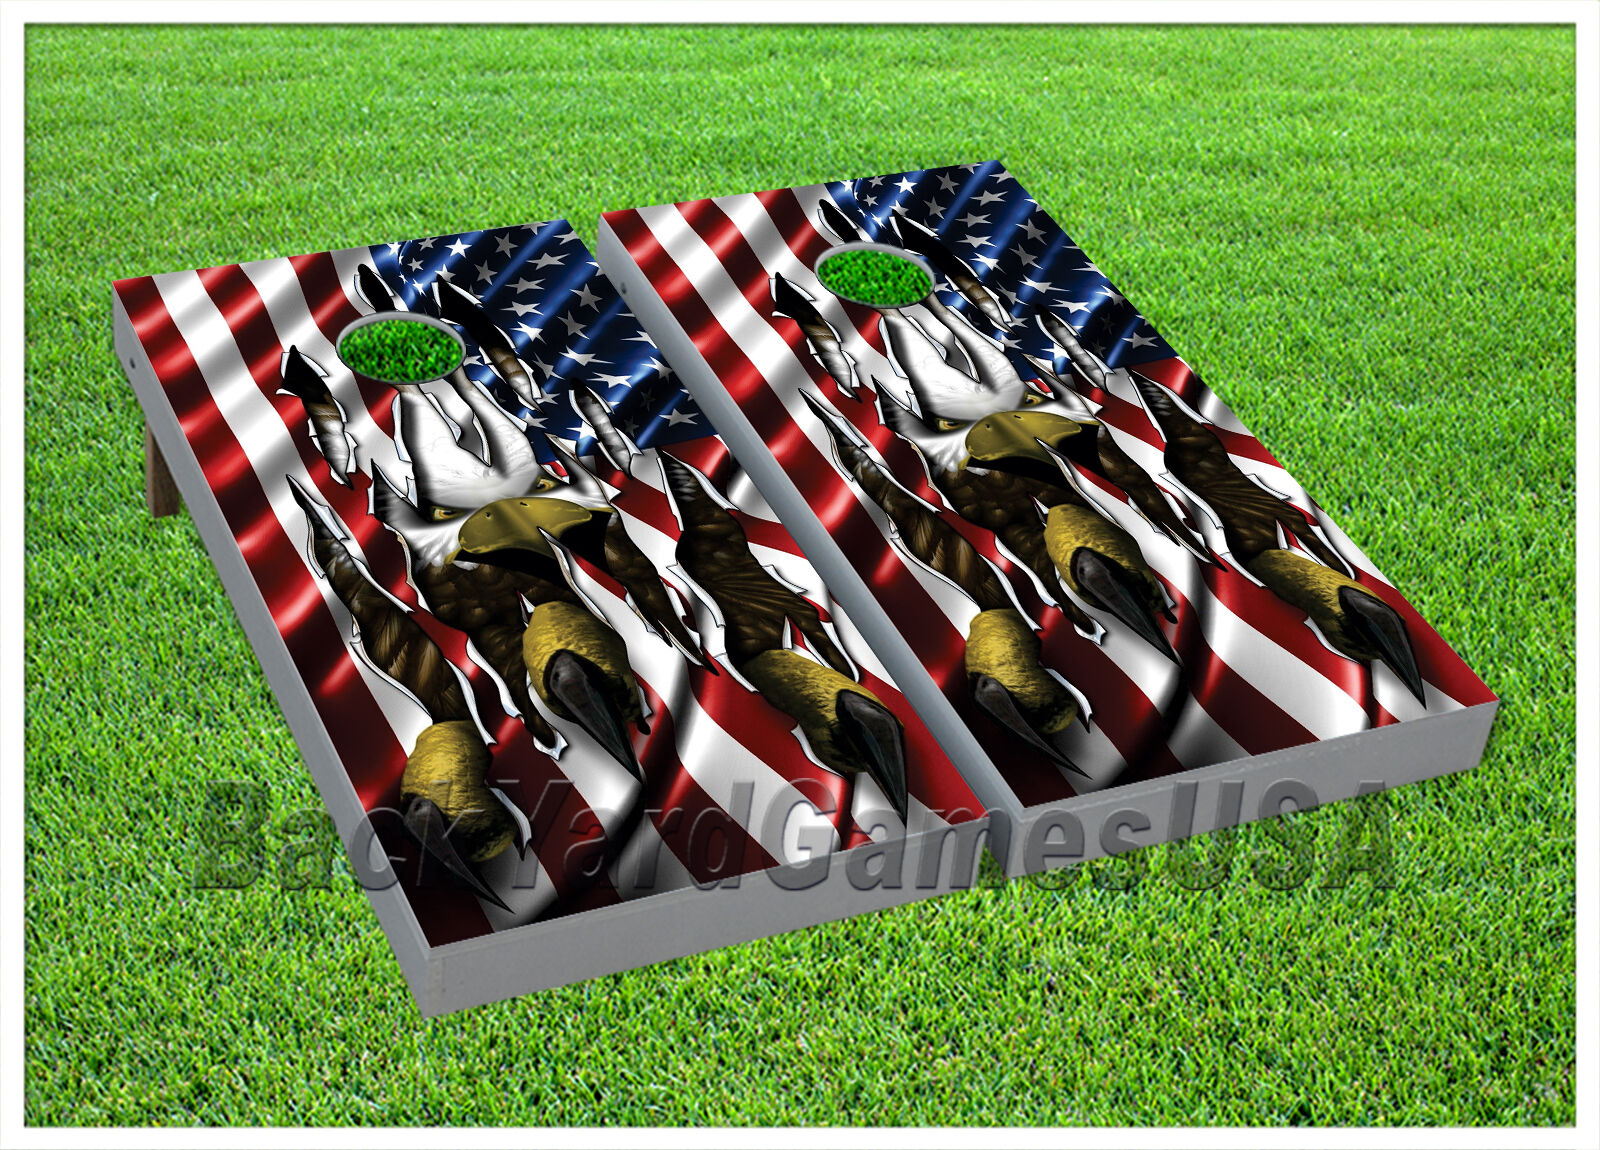 CORNHOLE BEANBAG TOSS GAME w Bags Red White bluee Patriotic US Flag Eagle 889